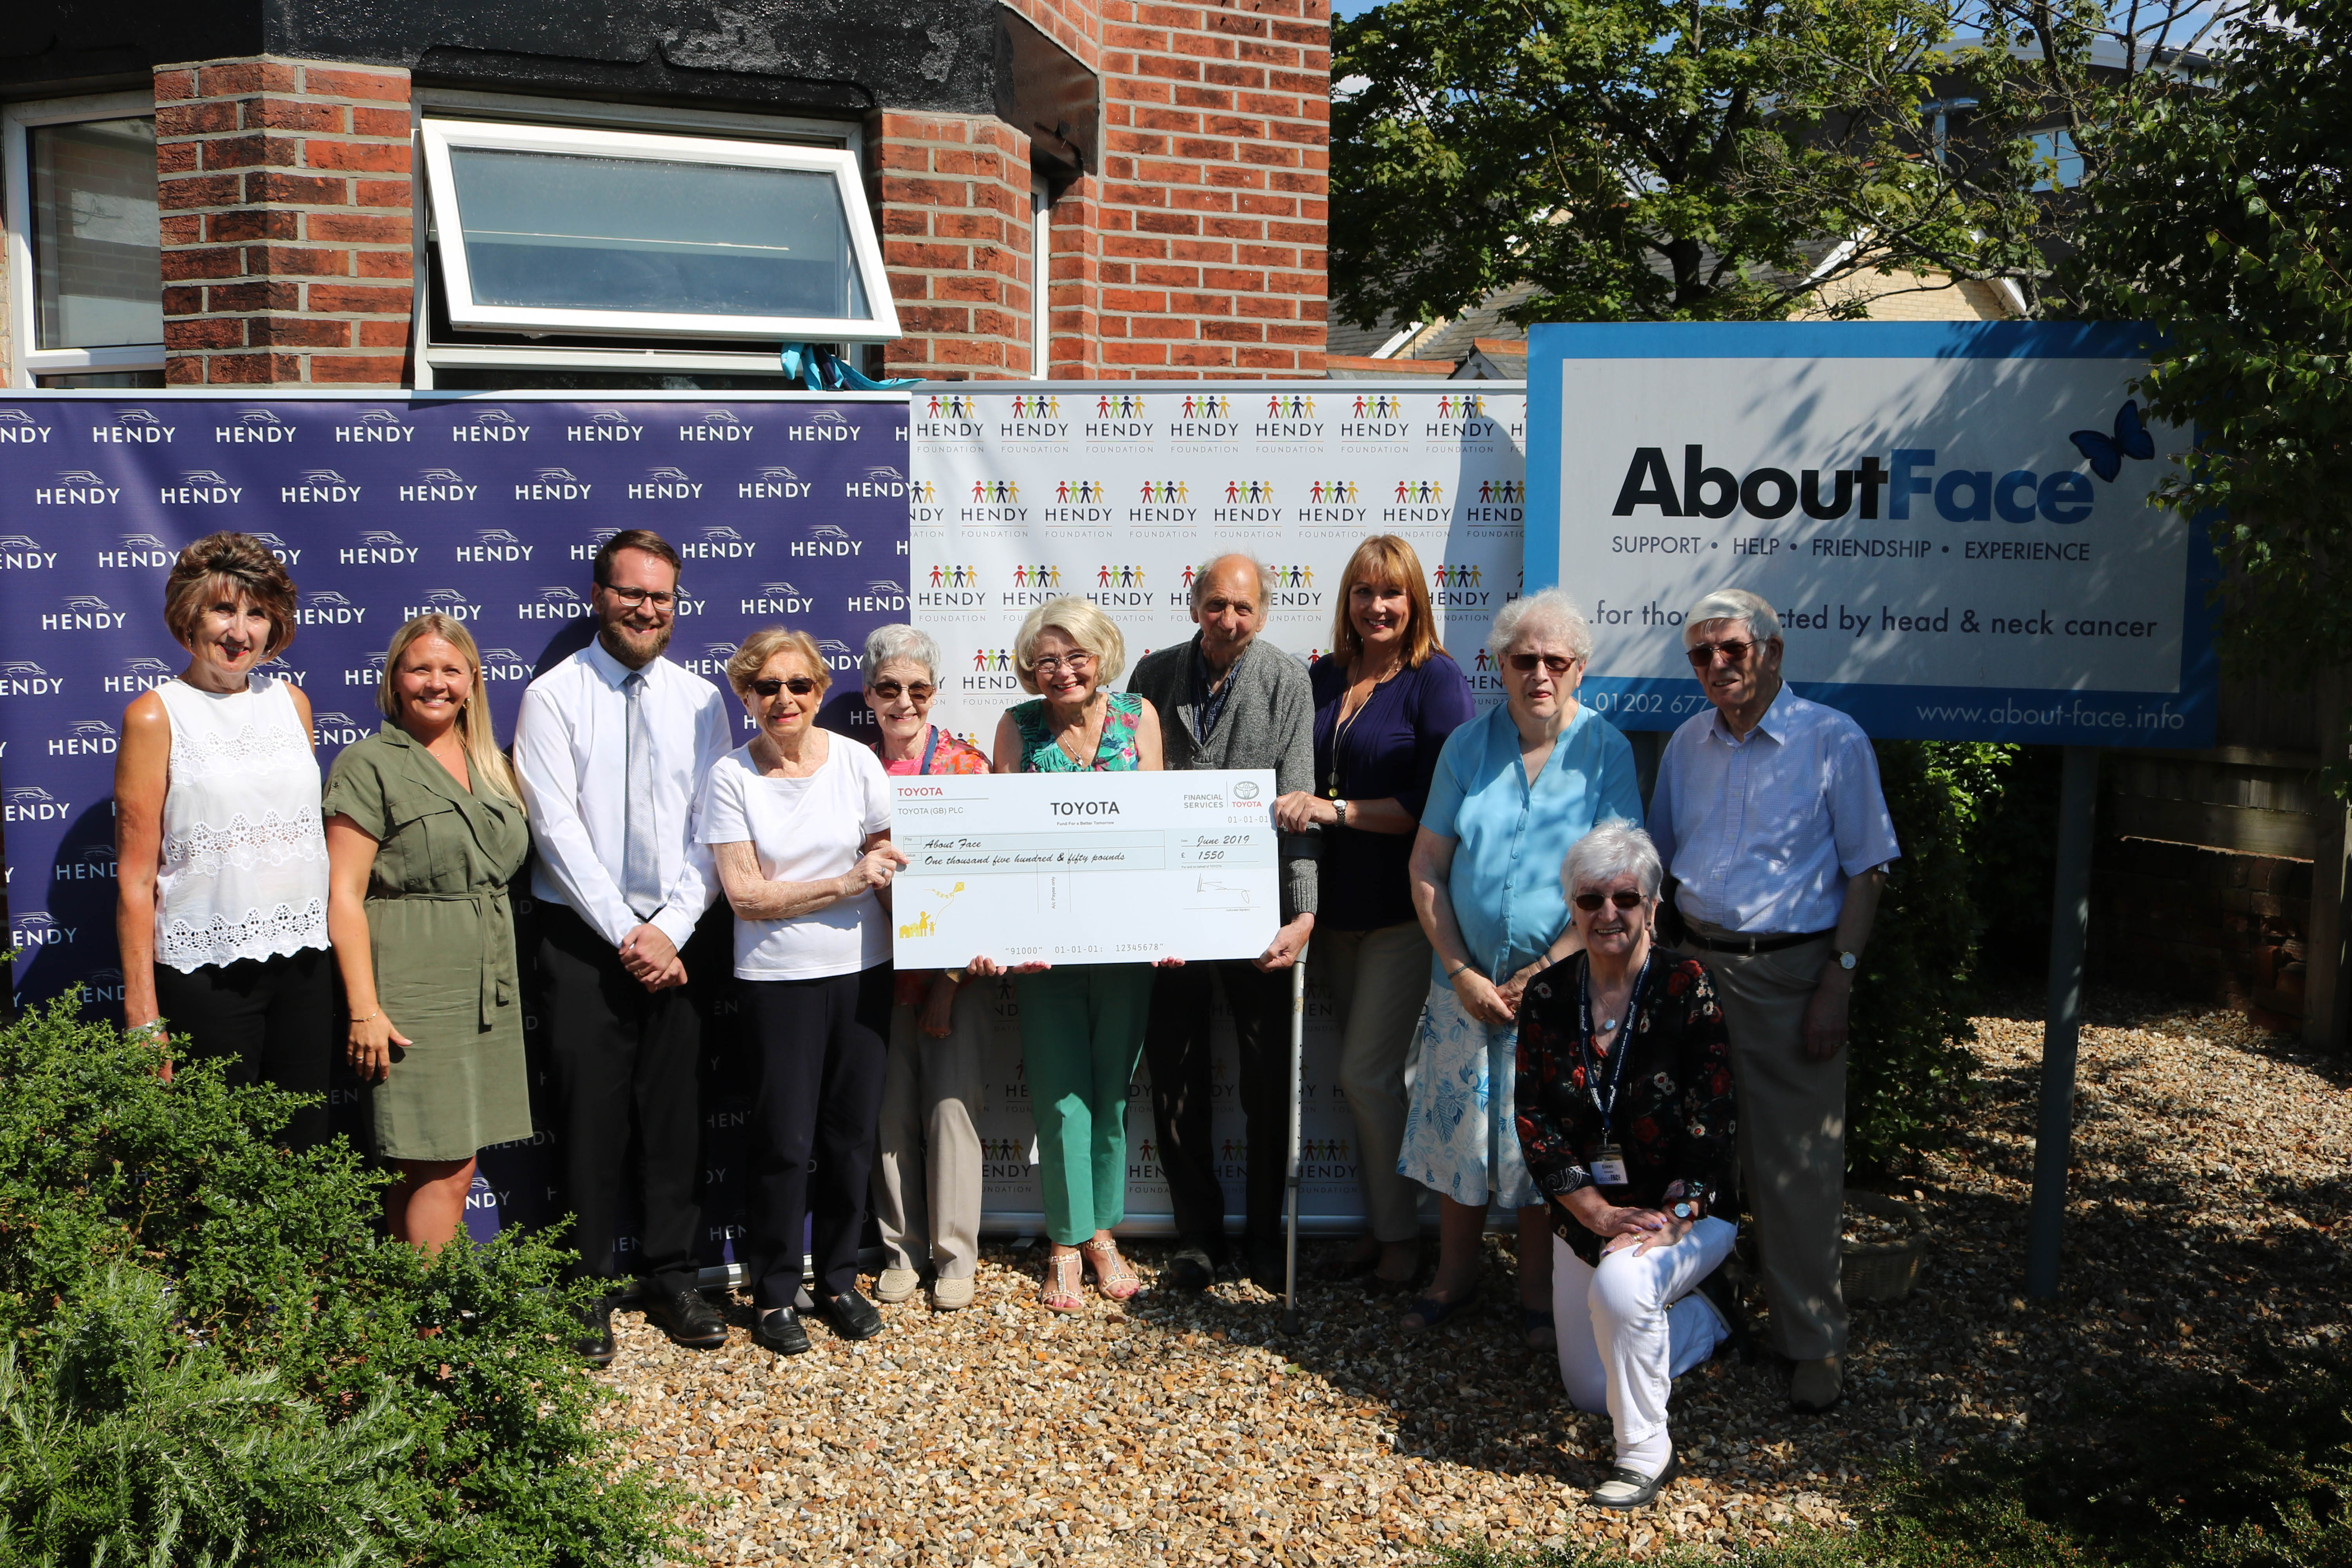 Dorset charity benefits from £1,500 donation image